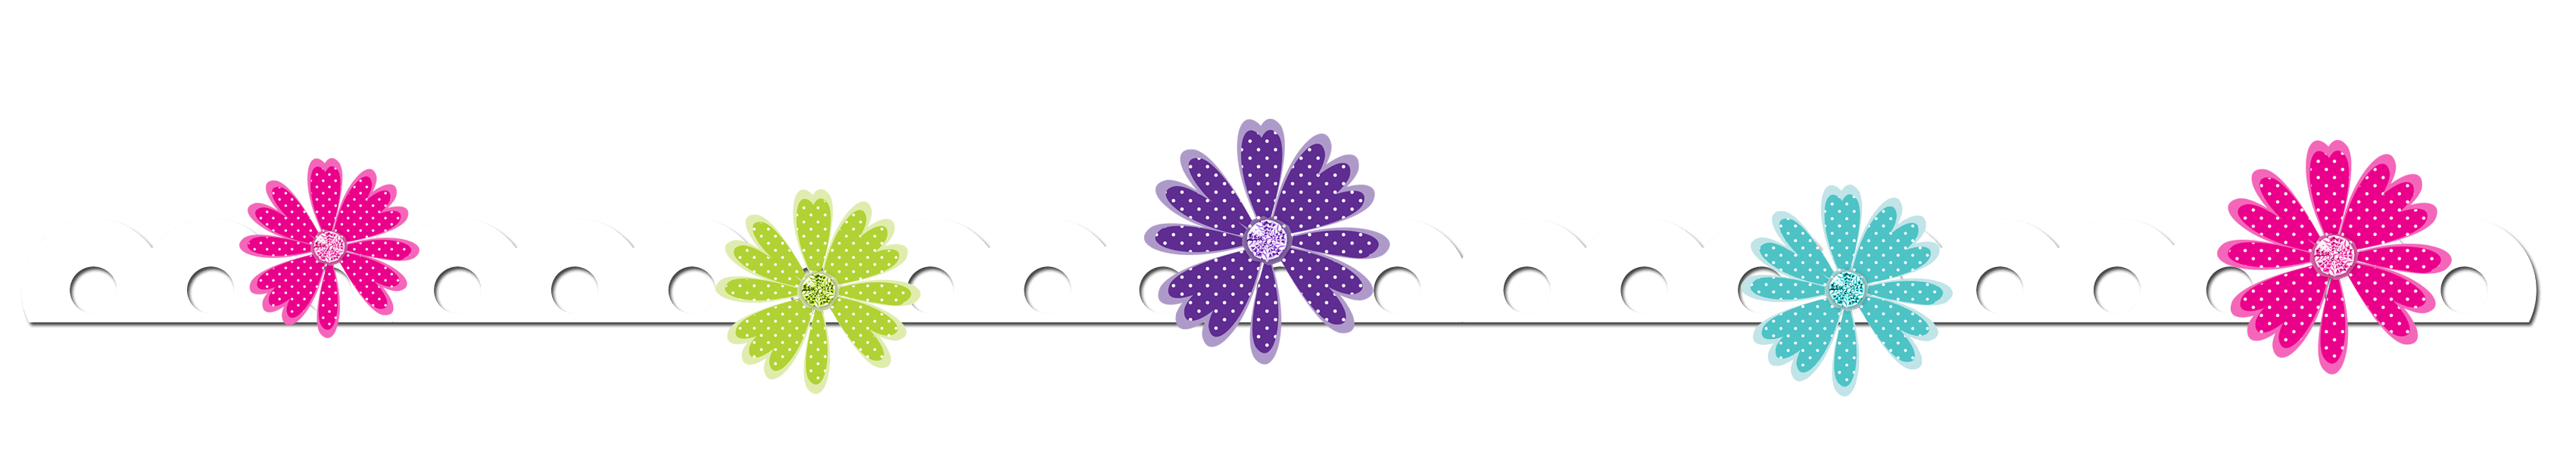 Mexican flower border clipart graphic black and white download Free Border Cliparts Flower, Download Free Clip Art, Free Clip Art ... graphic black and white download